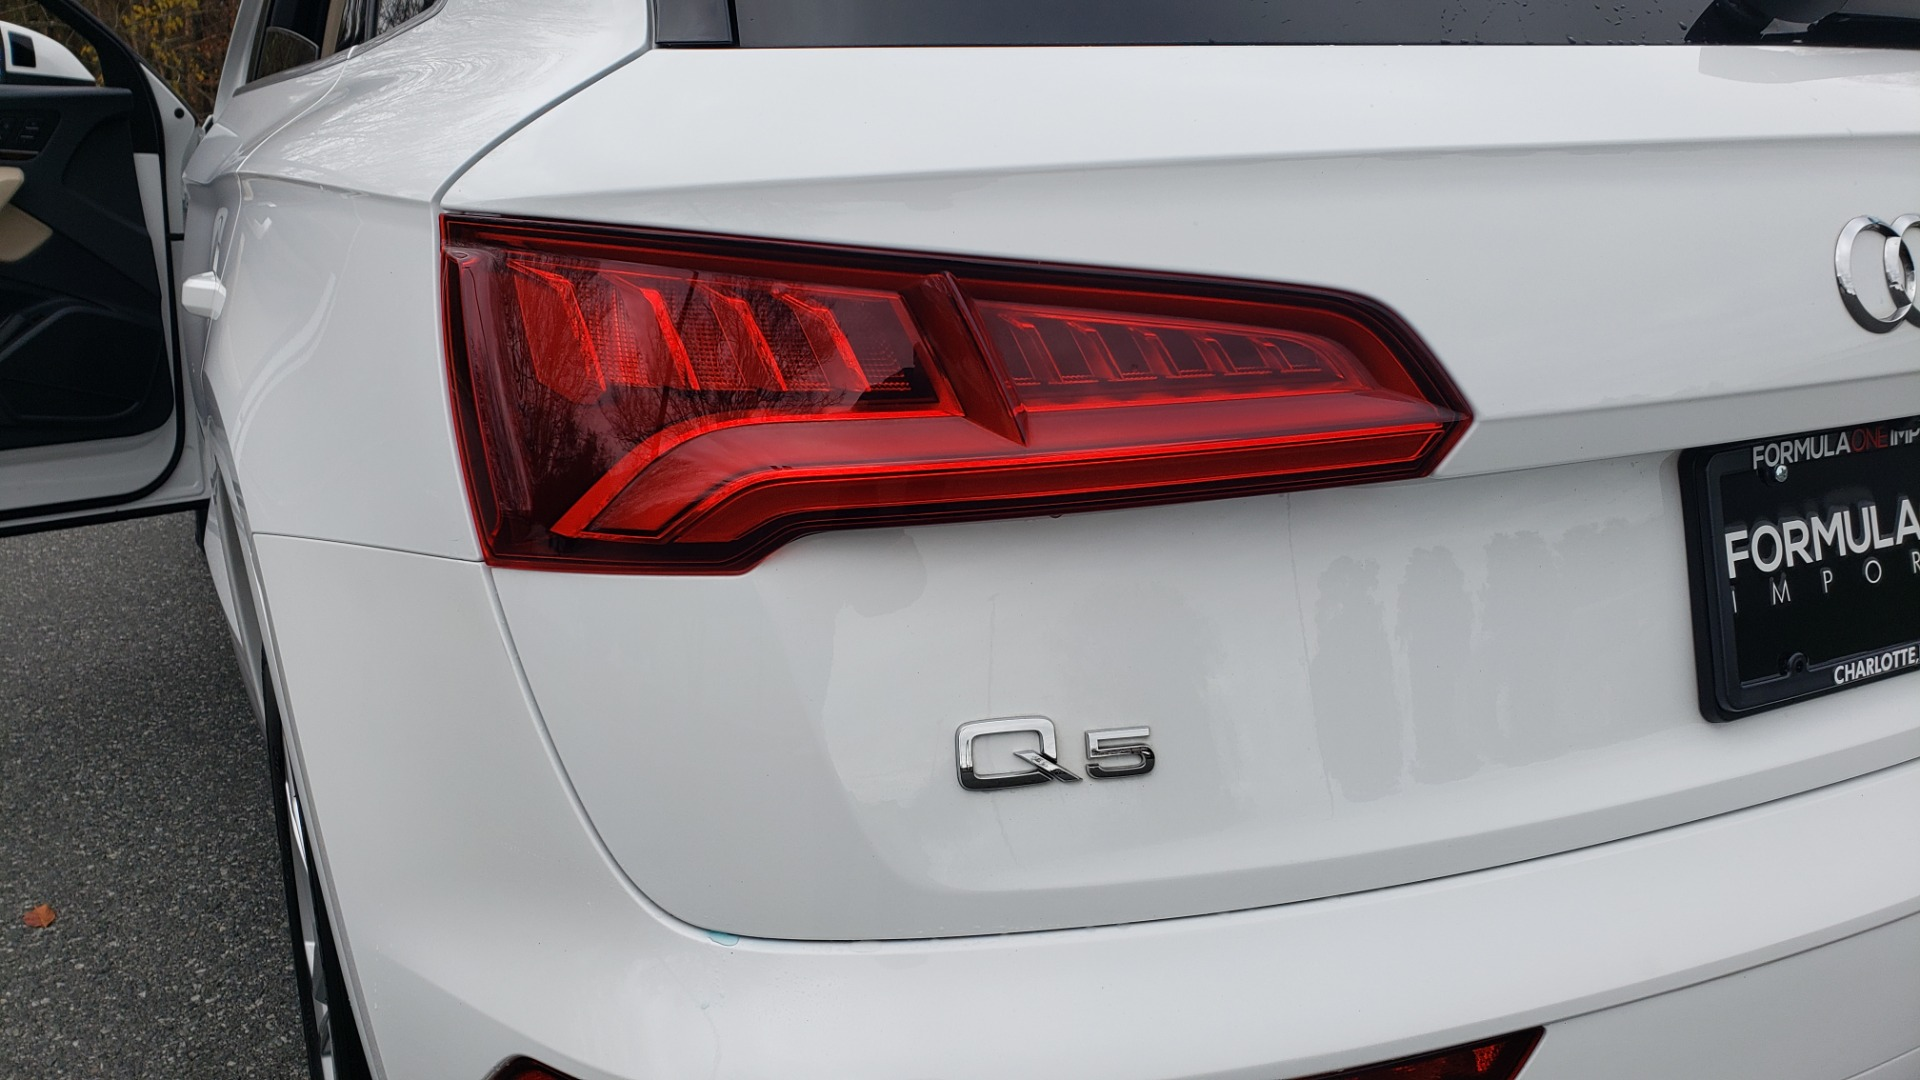 Used 2018 Audi Q5 PREMIUM PLUS / NAV PKG / SUNROOF / CLD WTHR / REARVIEW for sale Sold at Formula Imports in Charlotte NC 28227 29